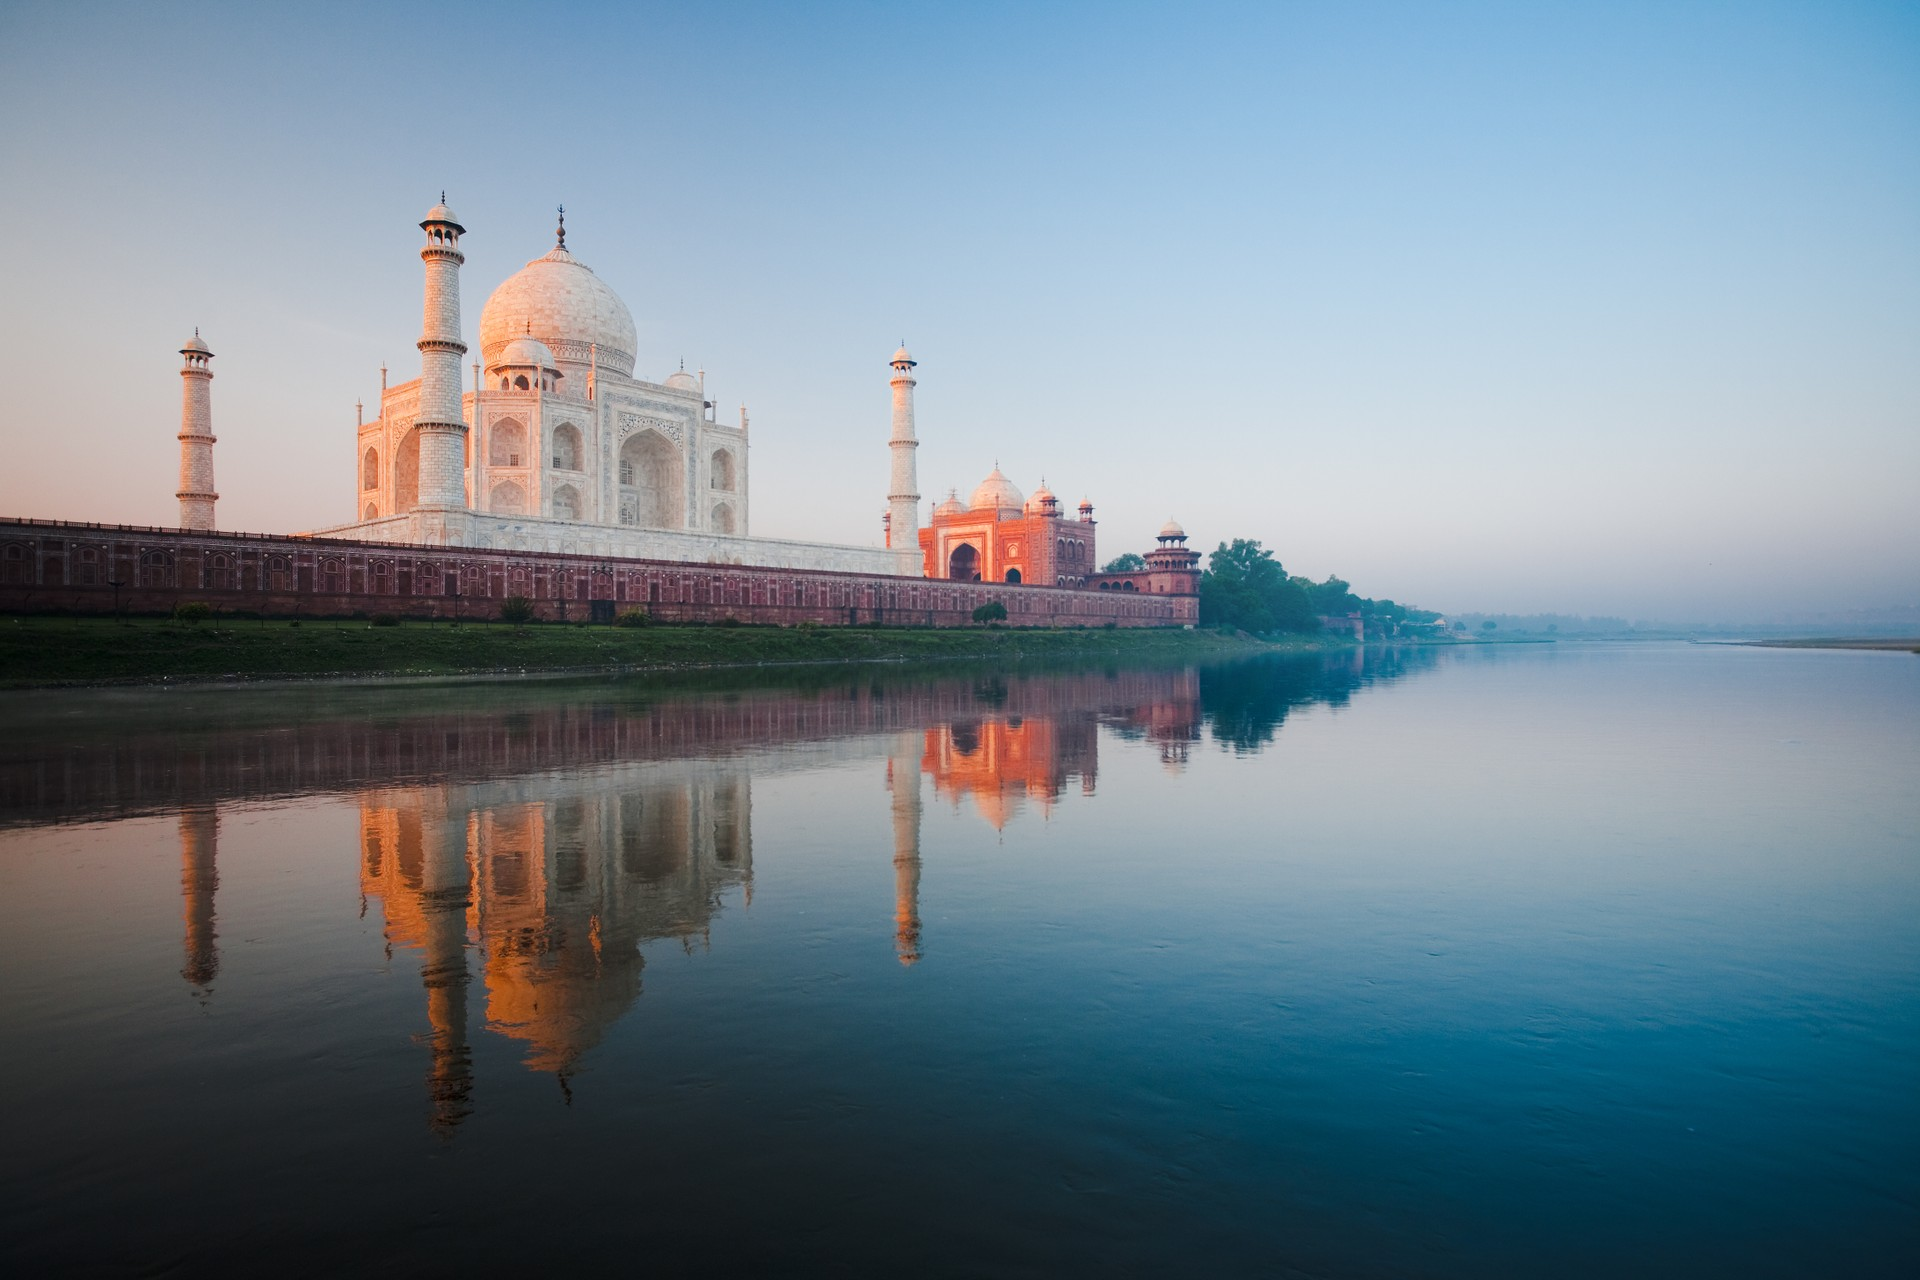 Taj Mahal from the river